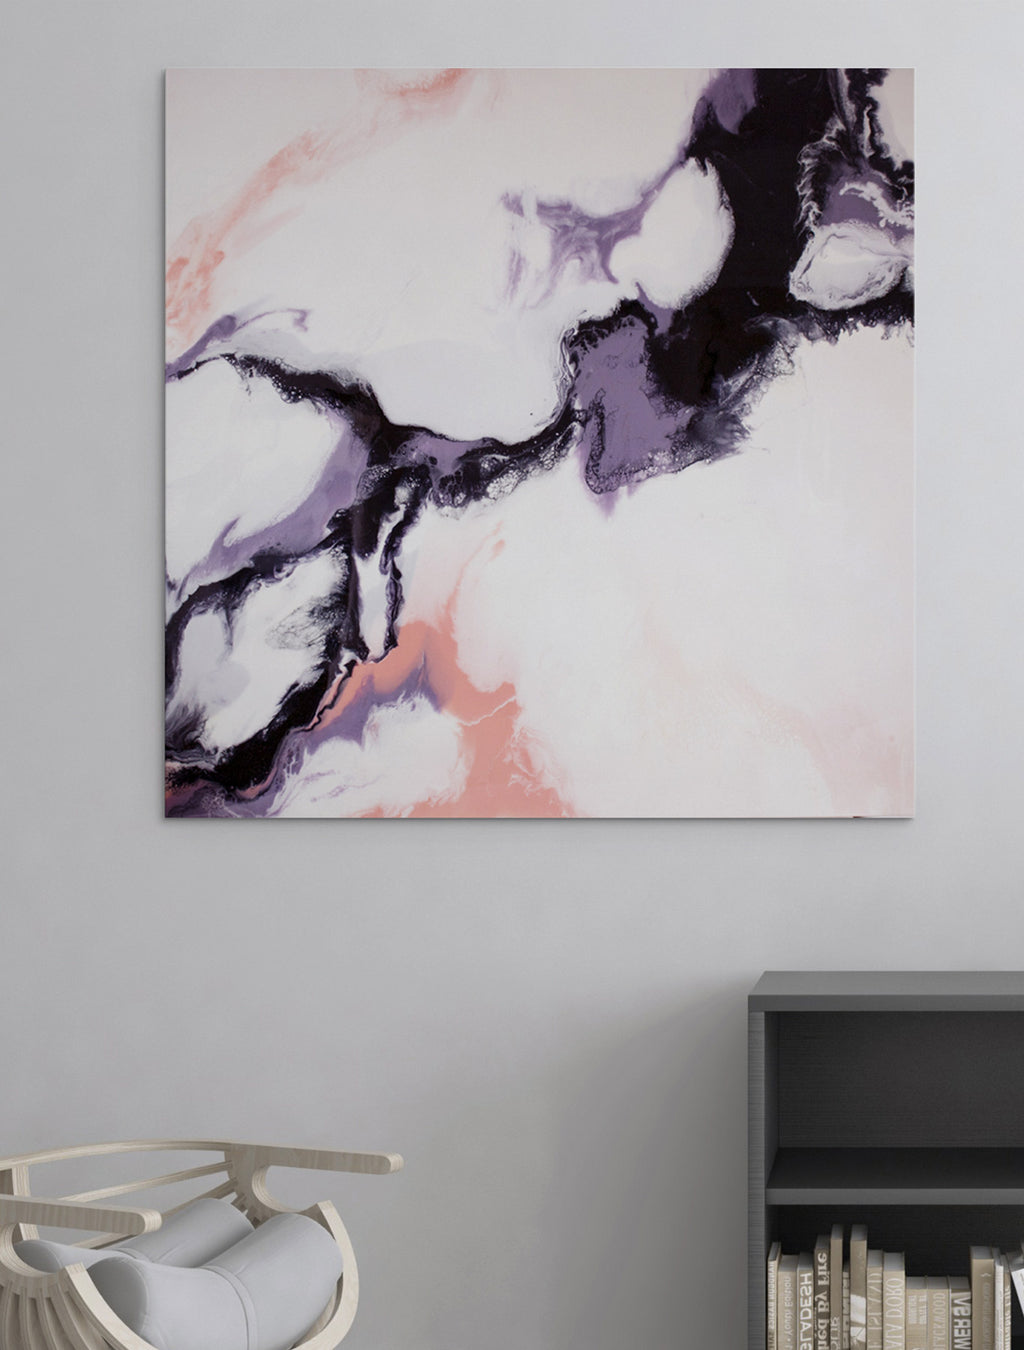 Above The Clouds - Abstract Painting on Wall - By Paige Ring